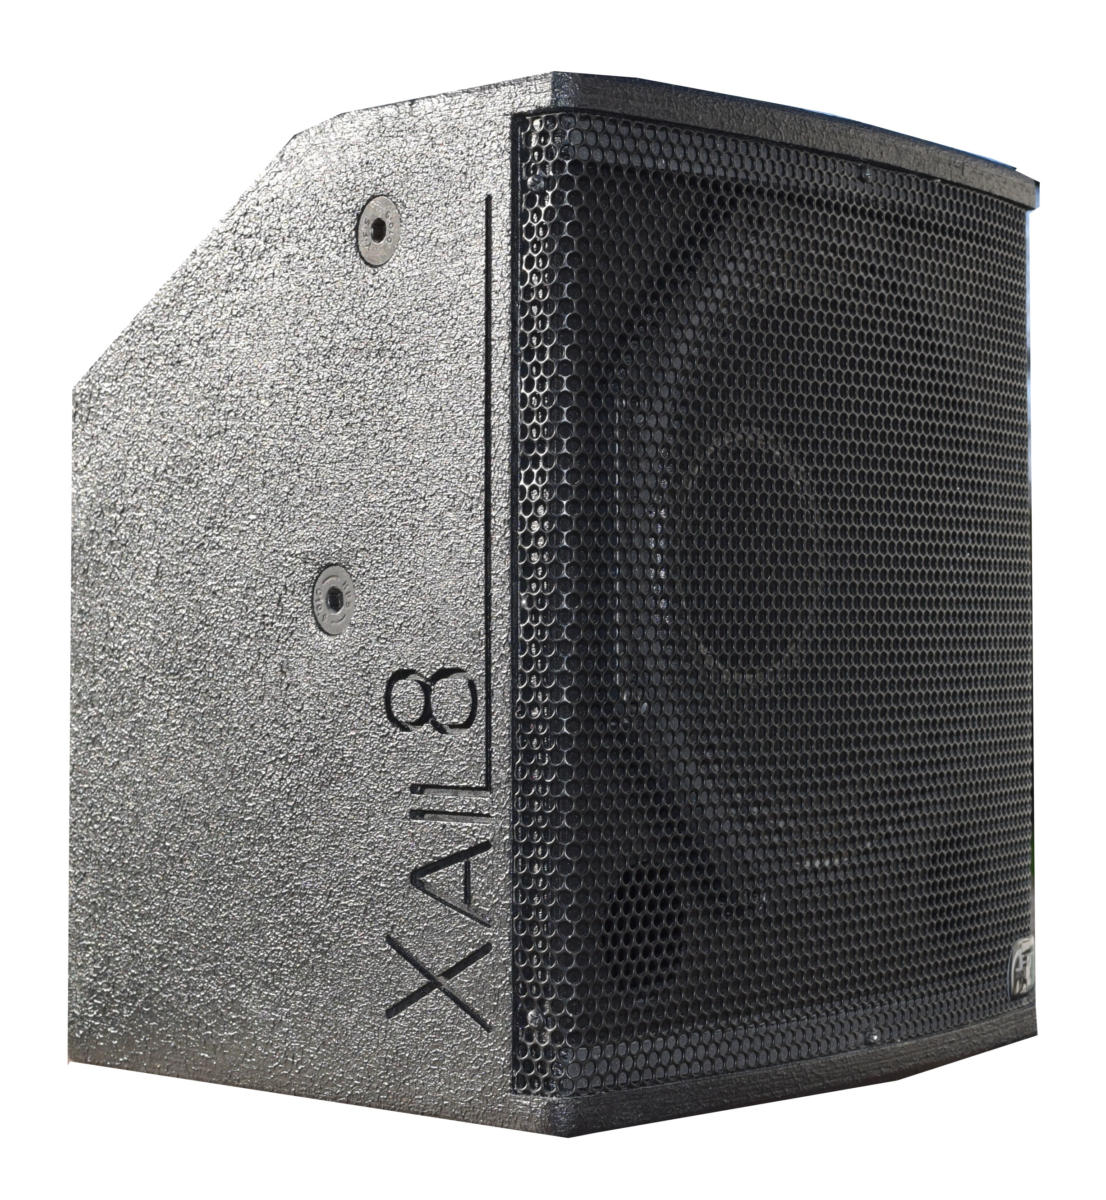 xail 8 front side